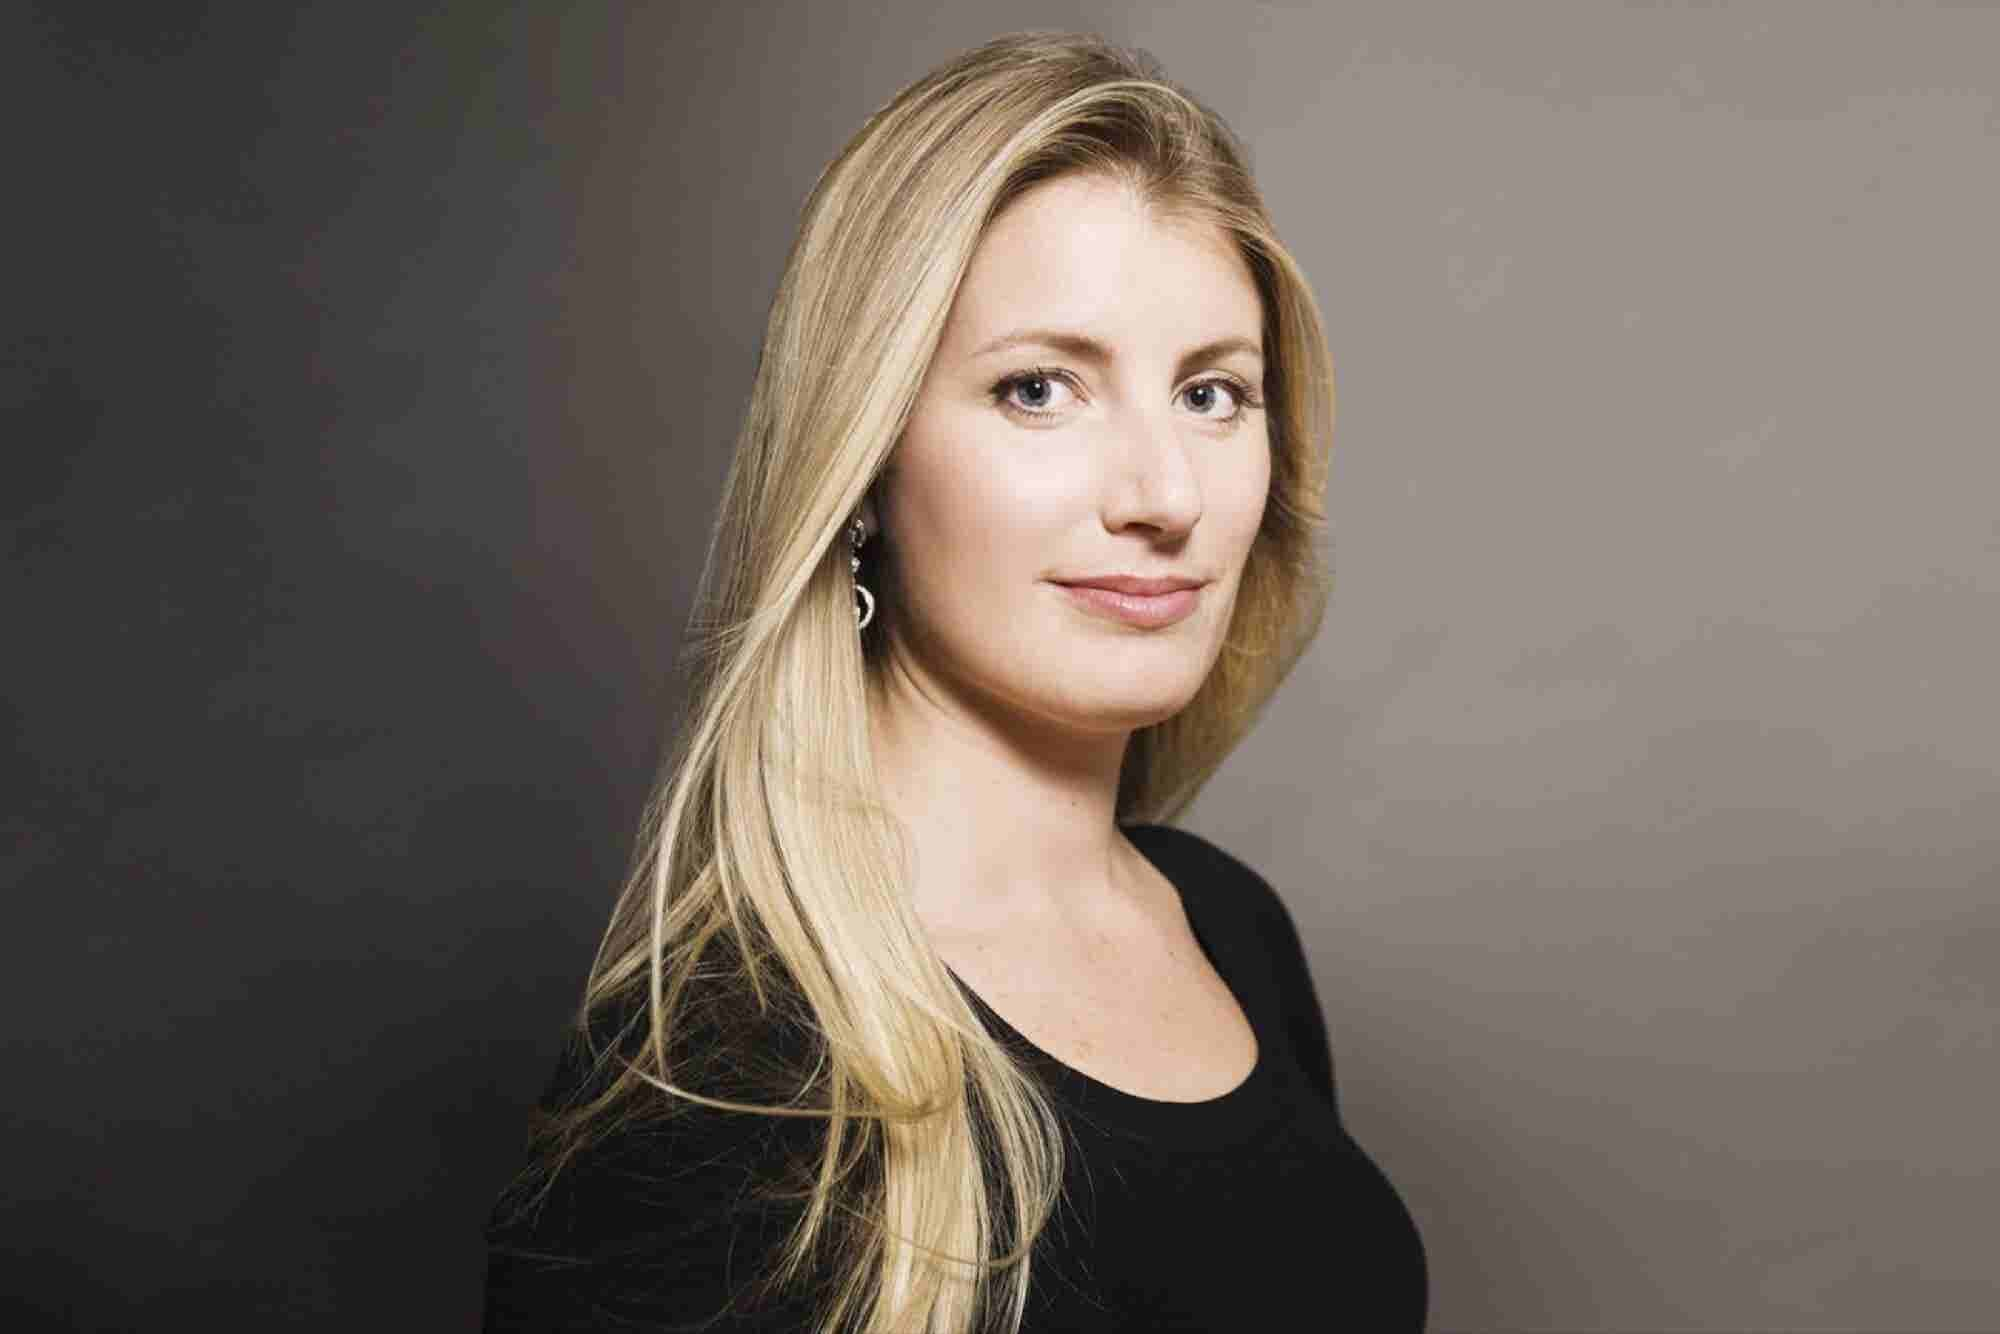 The Co-Founder of Gilt on What Her First Job at Ebay Taught Her About Running a Company